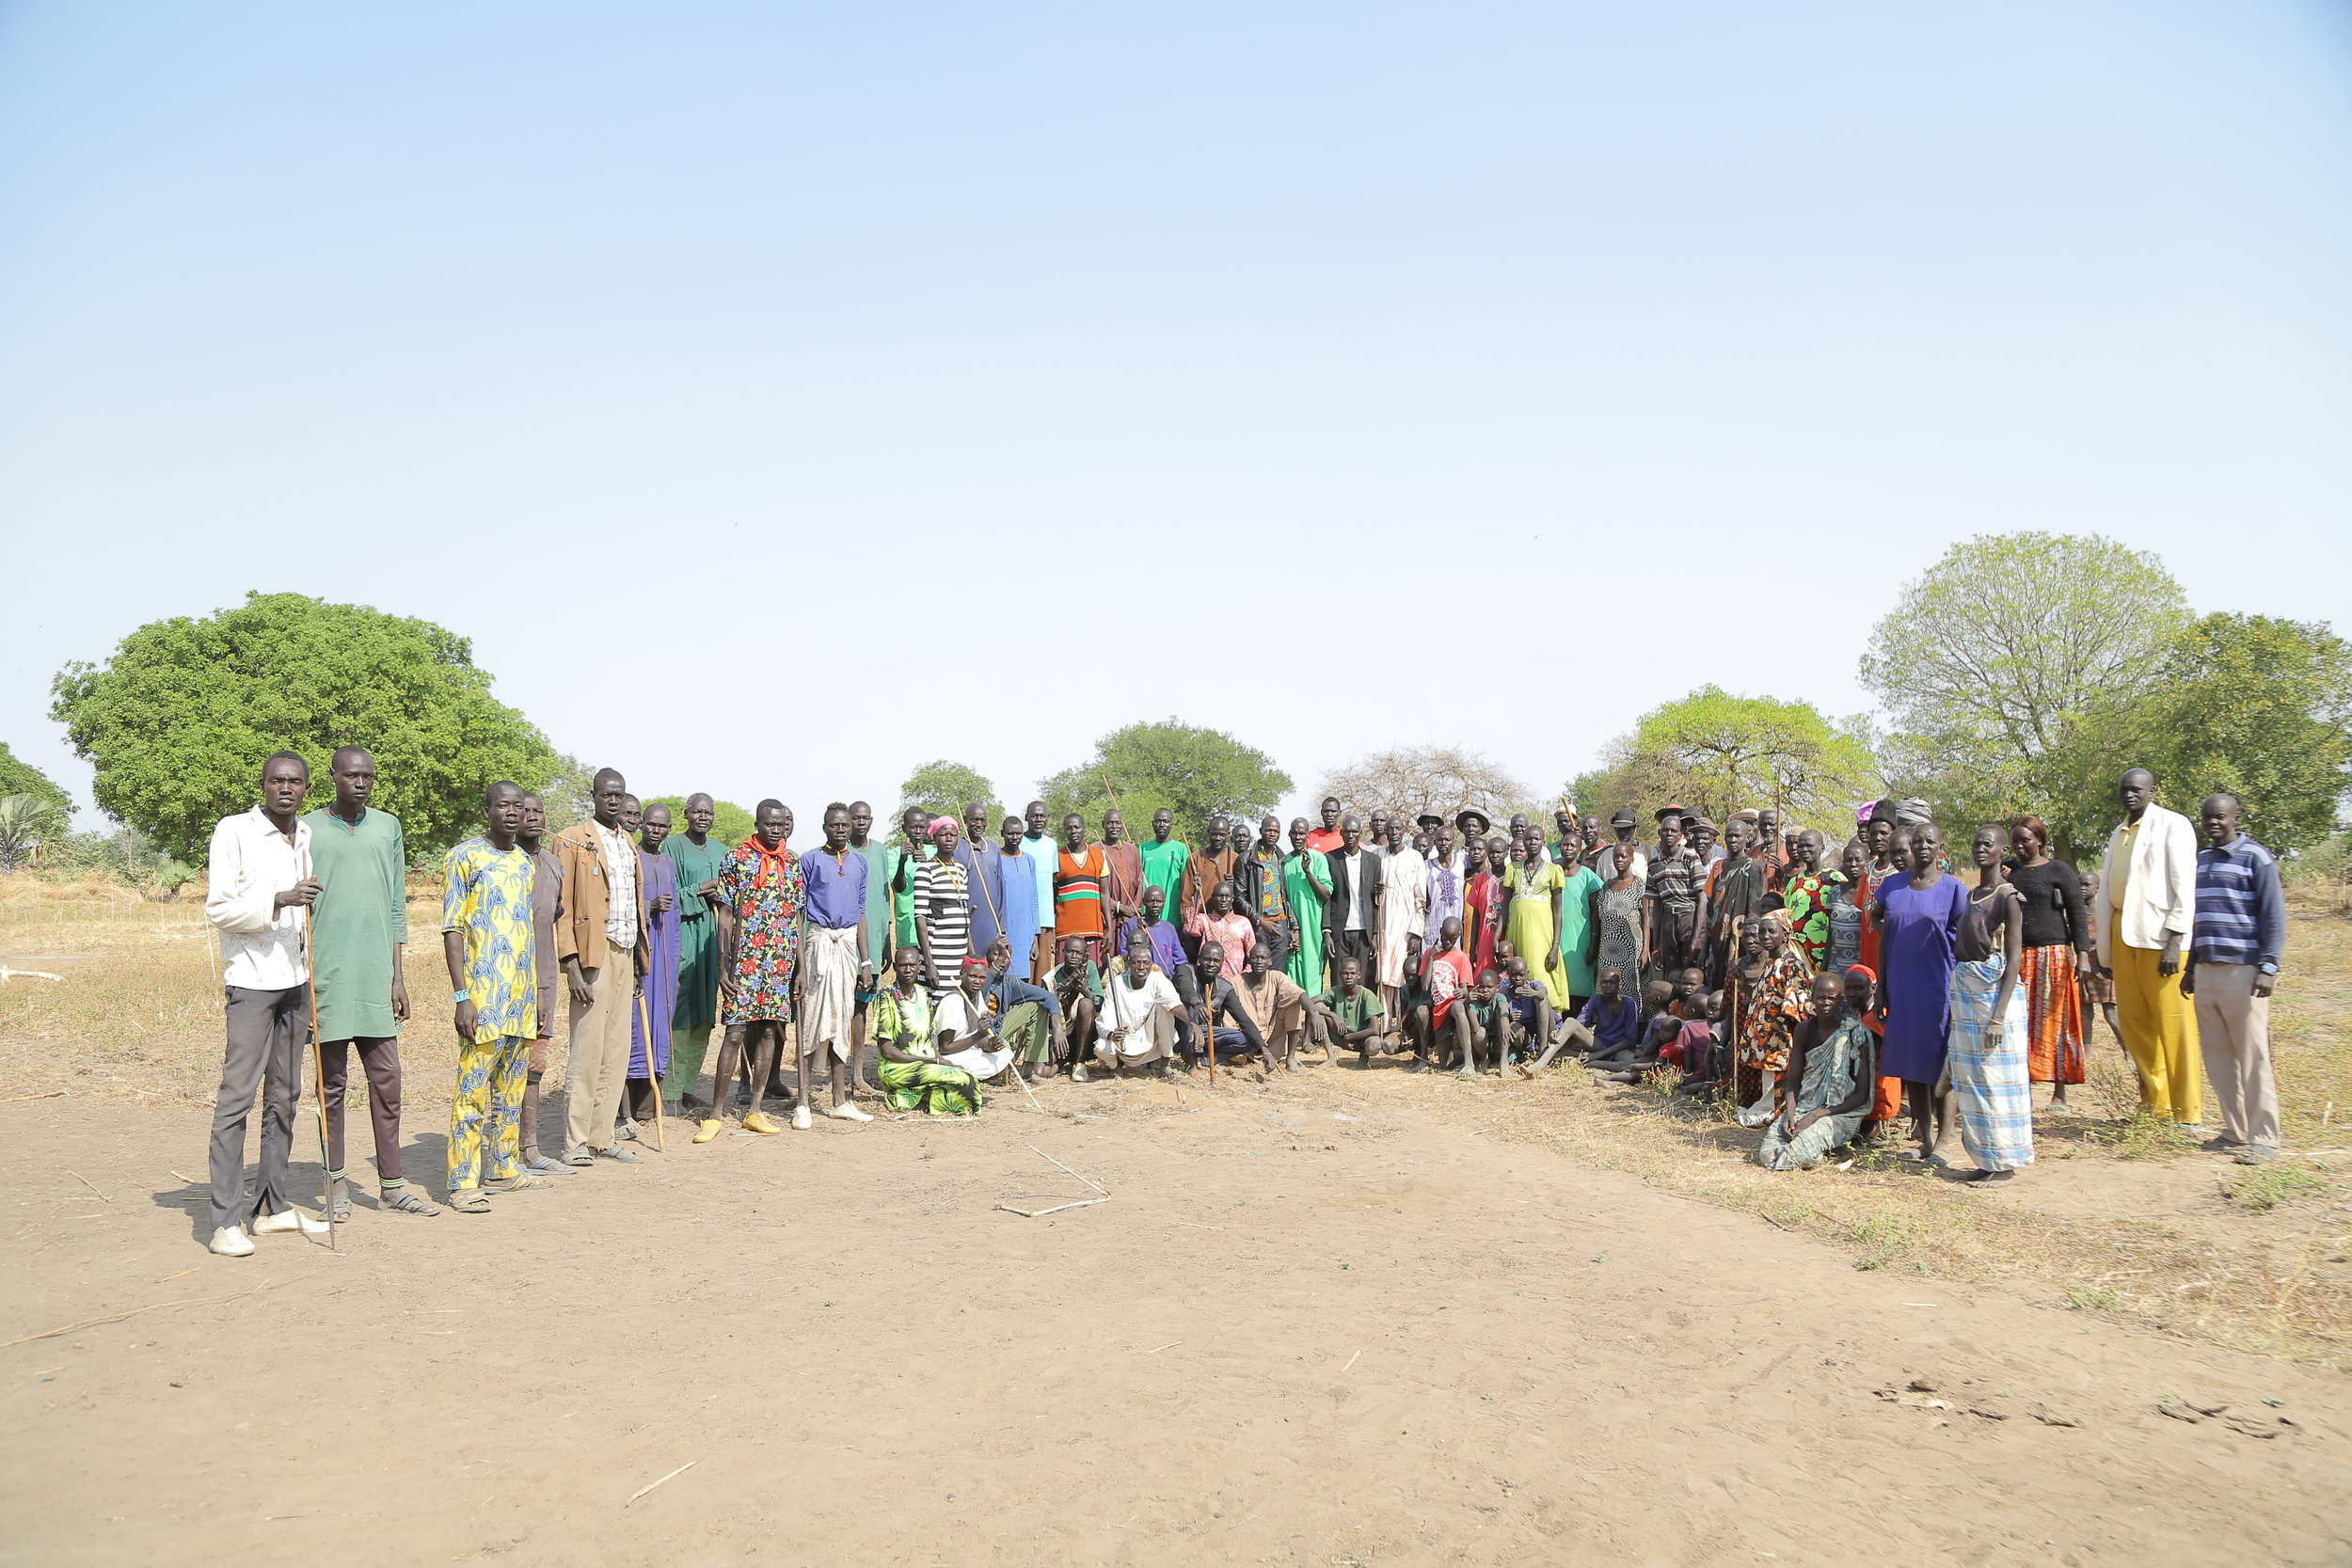 Community members of Thiet in Tonj, South Sudan. All photos:  Jean Luc Habimana